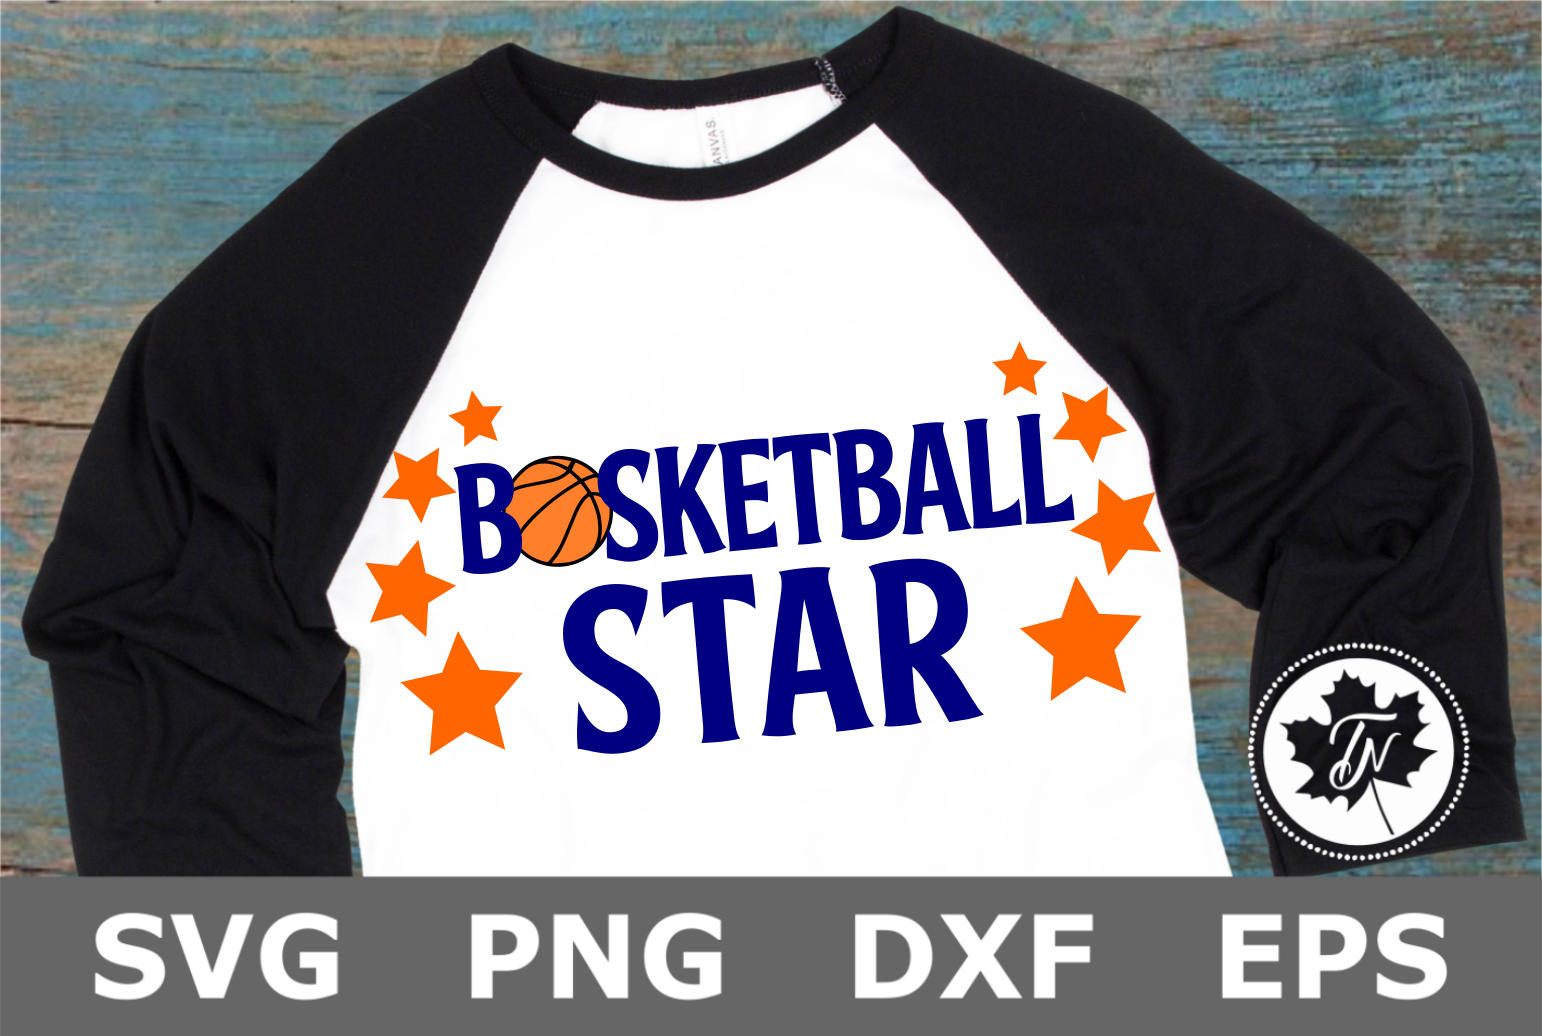 Basketball Star - A Sports SVG Cut File example image 2